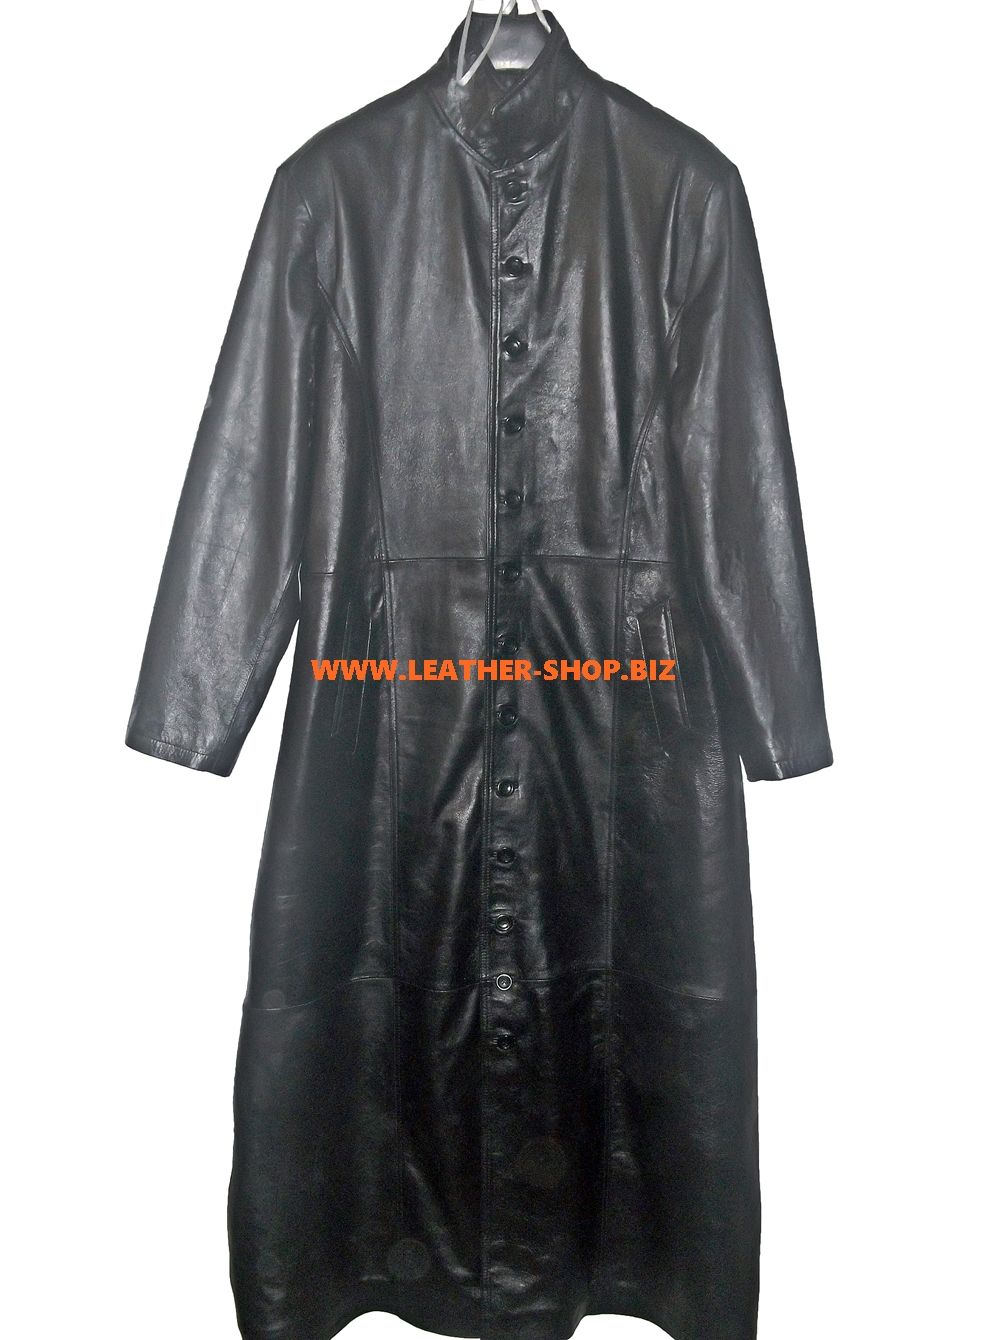 men-s-leather-trench-coat-custom-made-style-mtc555-www.leather-shop.biz-front-image.jpg